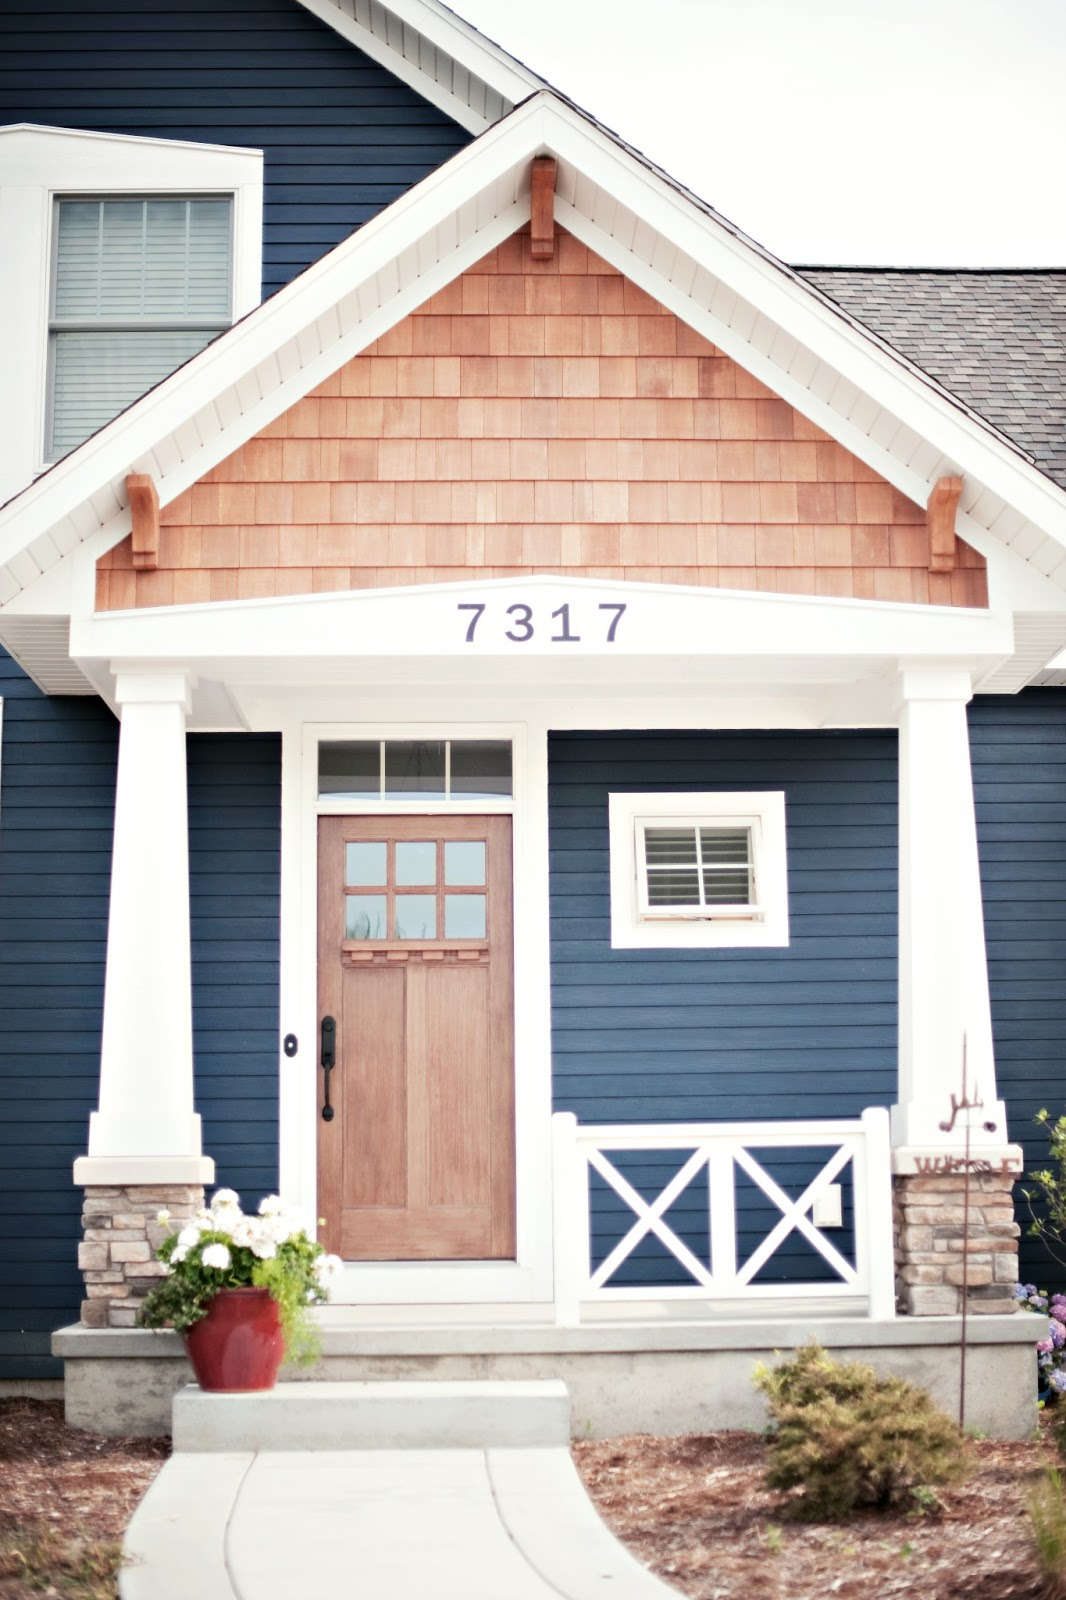 Lisa mende design best navy blue paint colors 8 of my favs - Home exterior paint ...